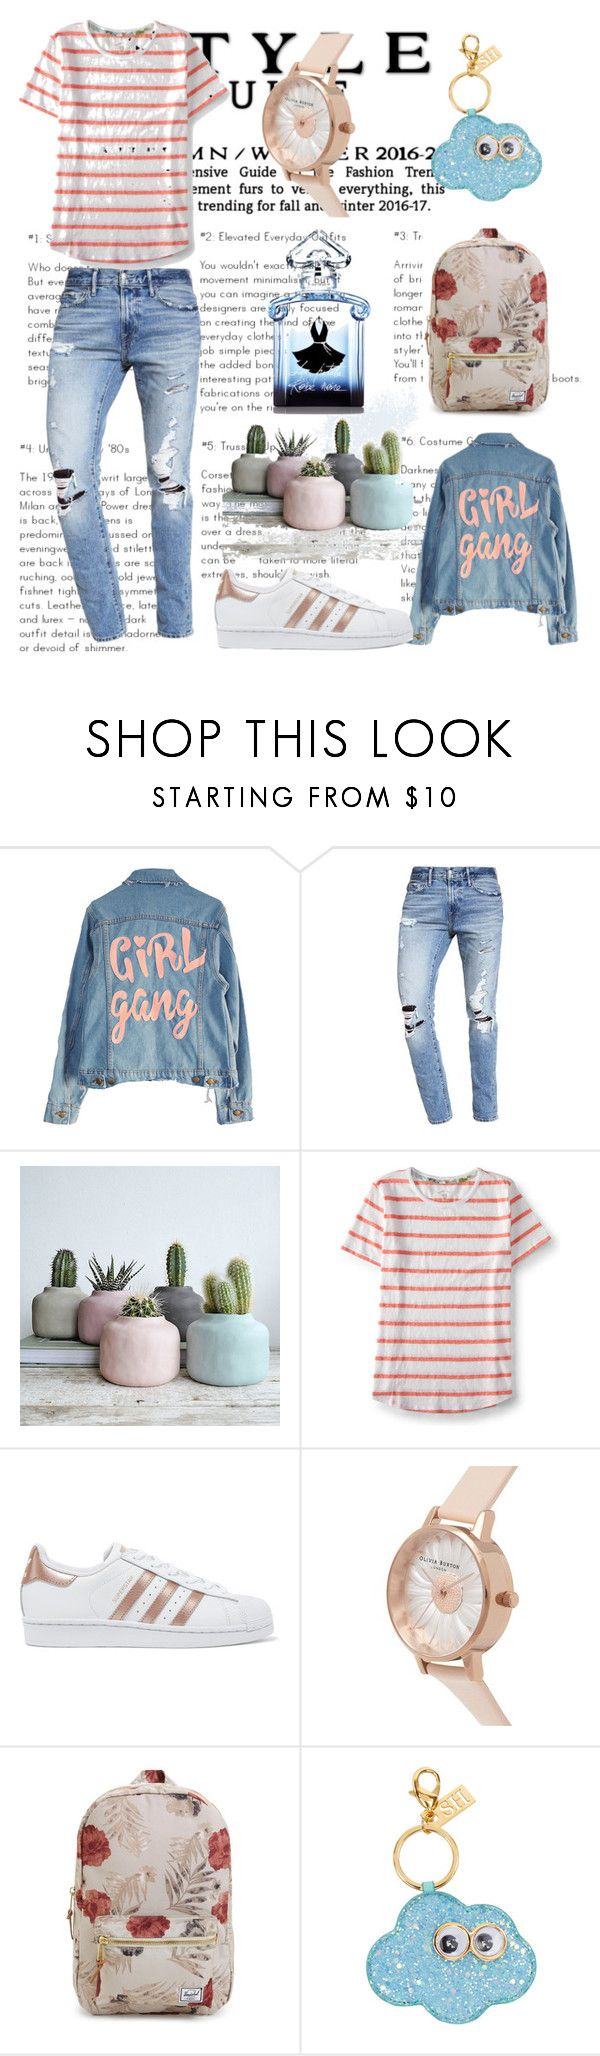 """""""Girl gang...cool, decontracted style !"""" by sha-shu on Polyvore featuring Abercrombie & Fitch, Aéropostale, adidas Originals, Olivia Burton, Herschel Supply Co., Sophie Hulme and Guerlain"""